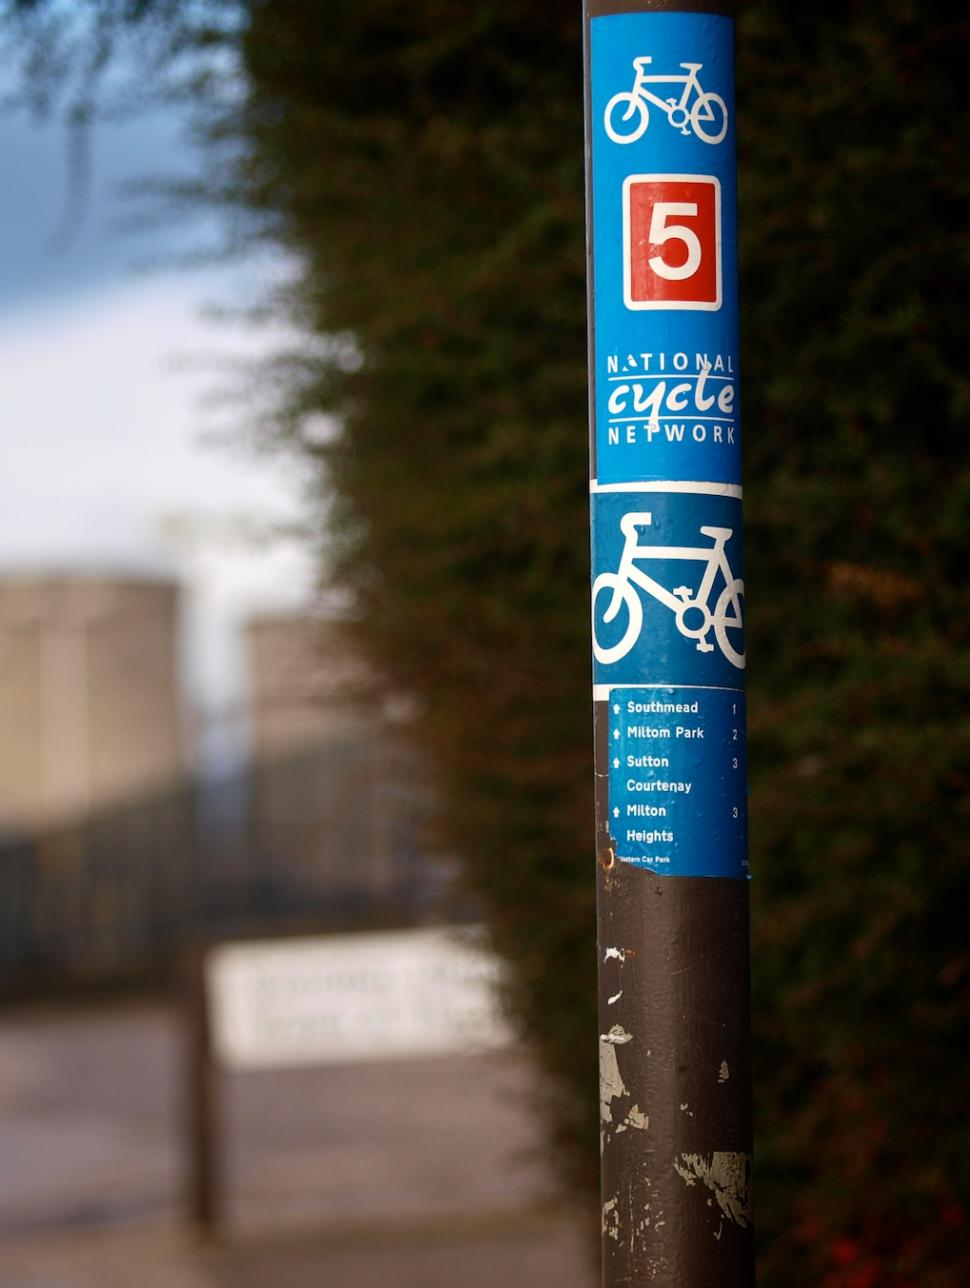 National Cycle Network sign © Simon MacMichael.jpg